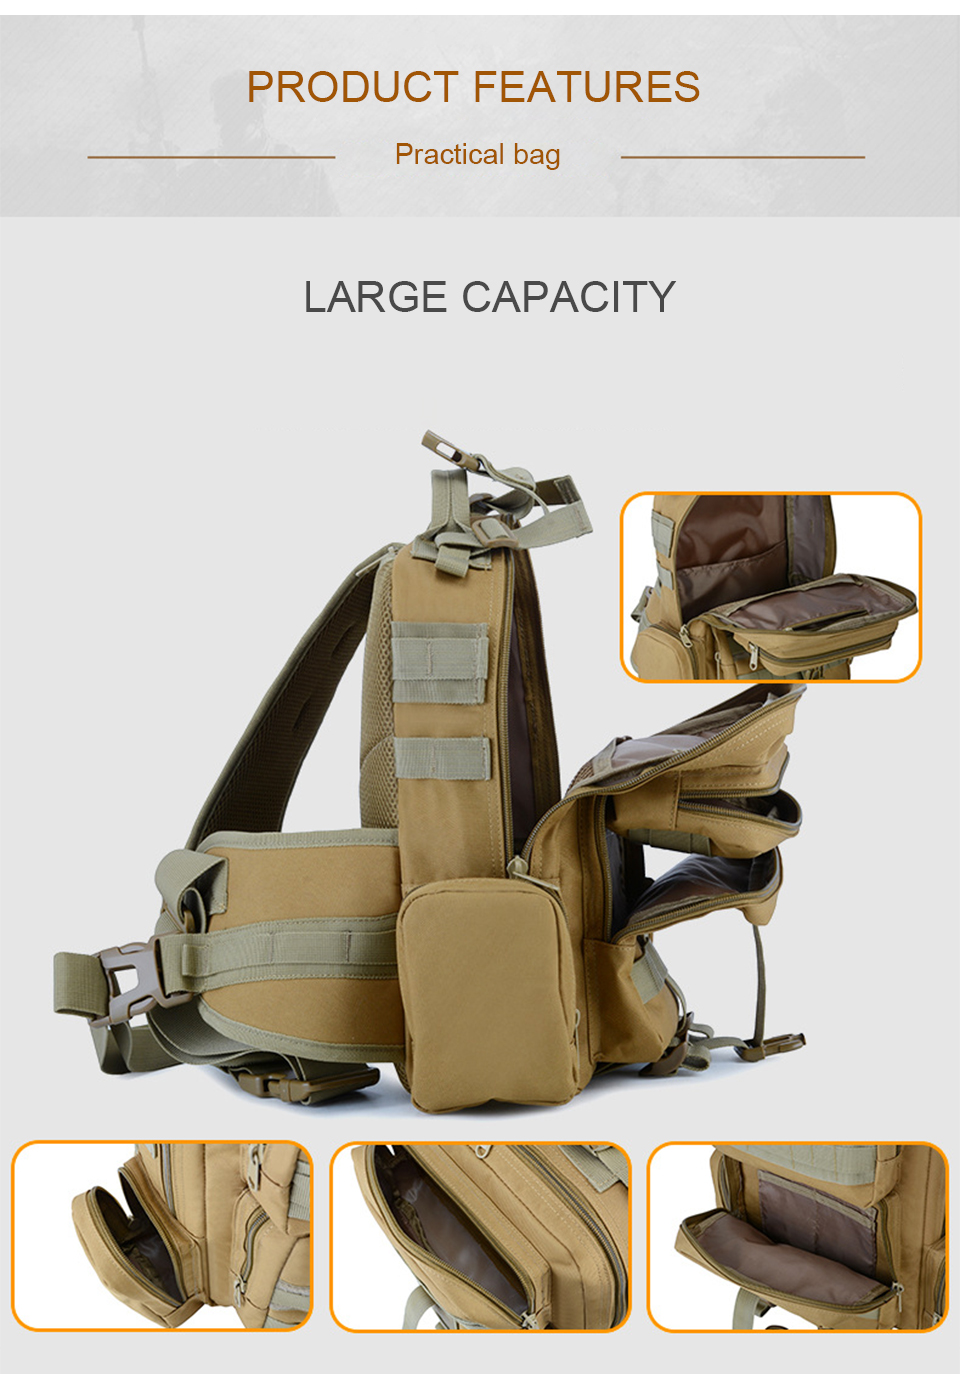 Outdoor-Sports-Military-Bag-Tactical-Bags-Climbing-Shoulder-Bag-Camping-Hiking-Hunting-Chest-Daypack-Molle-Camouflage-Backpack_04